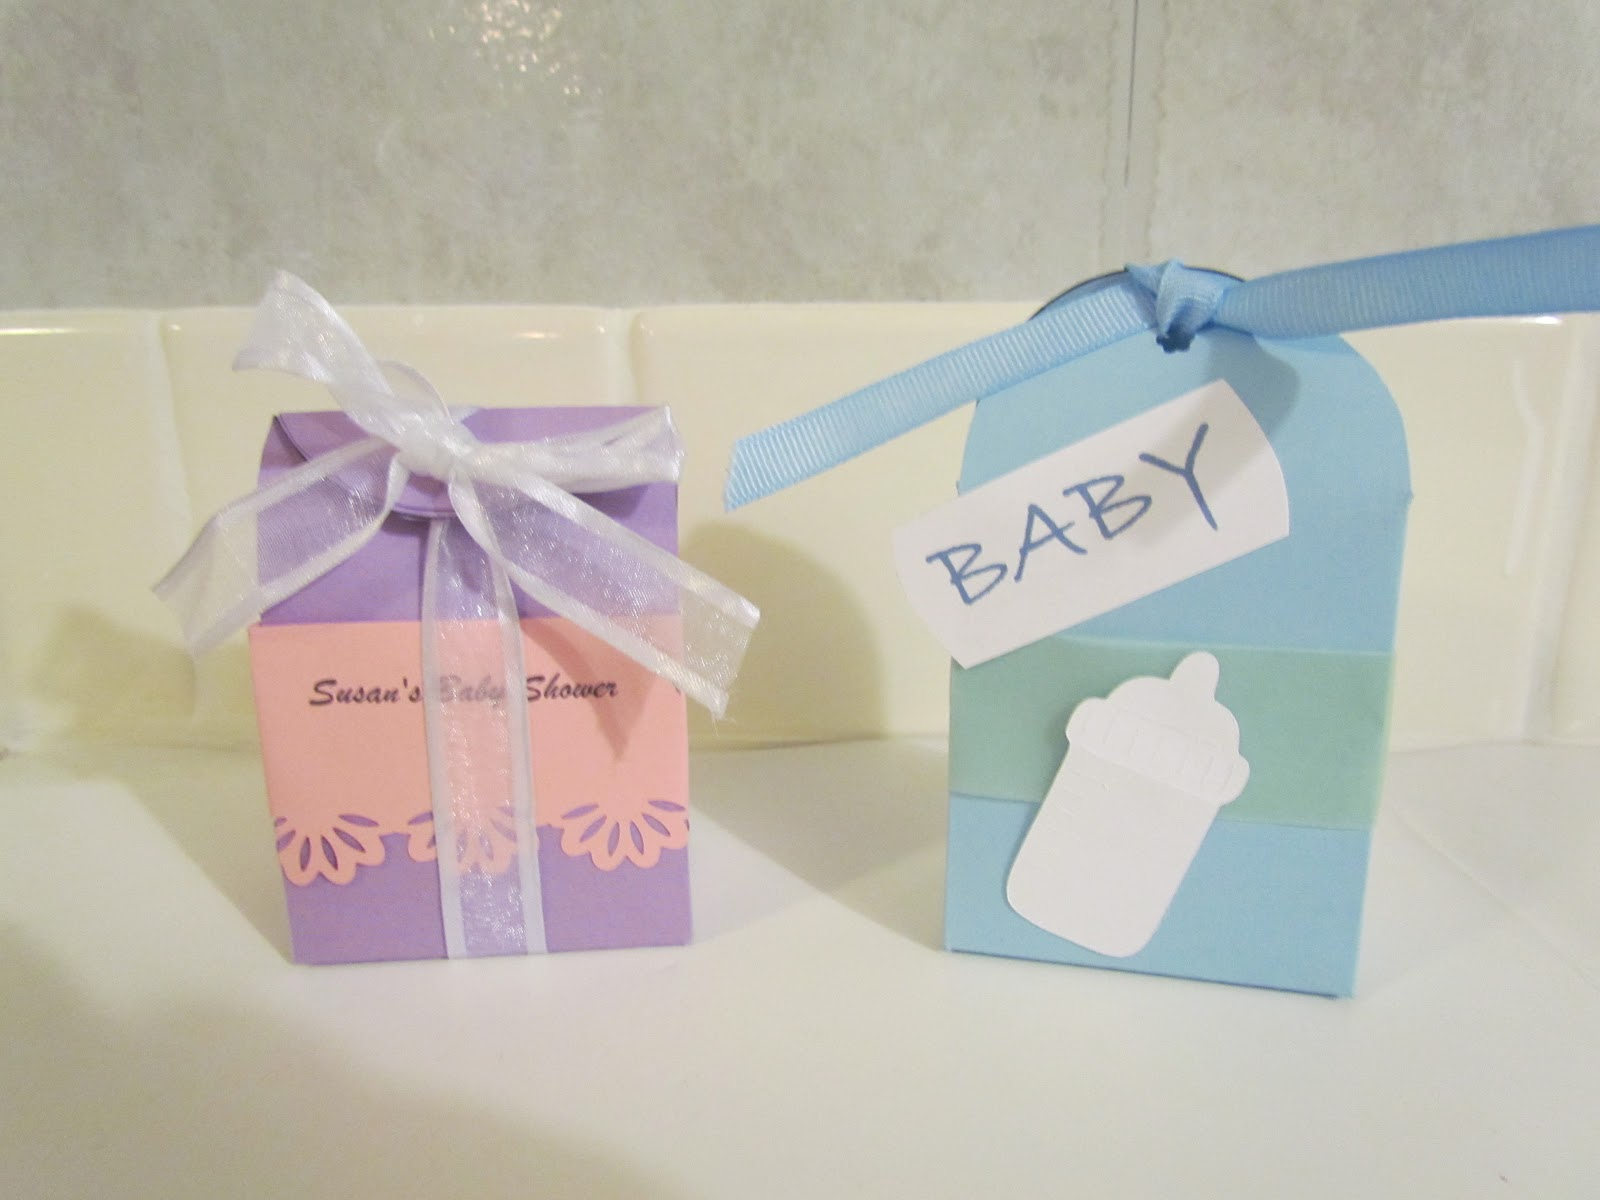 girl and boy gift bags for baby shower here are some gift bags i have